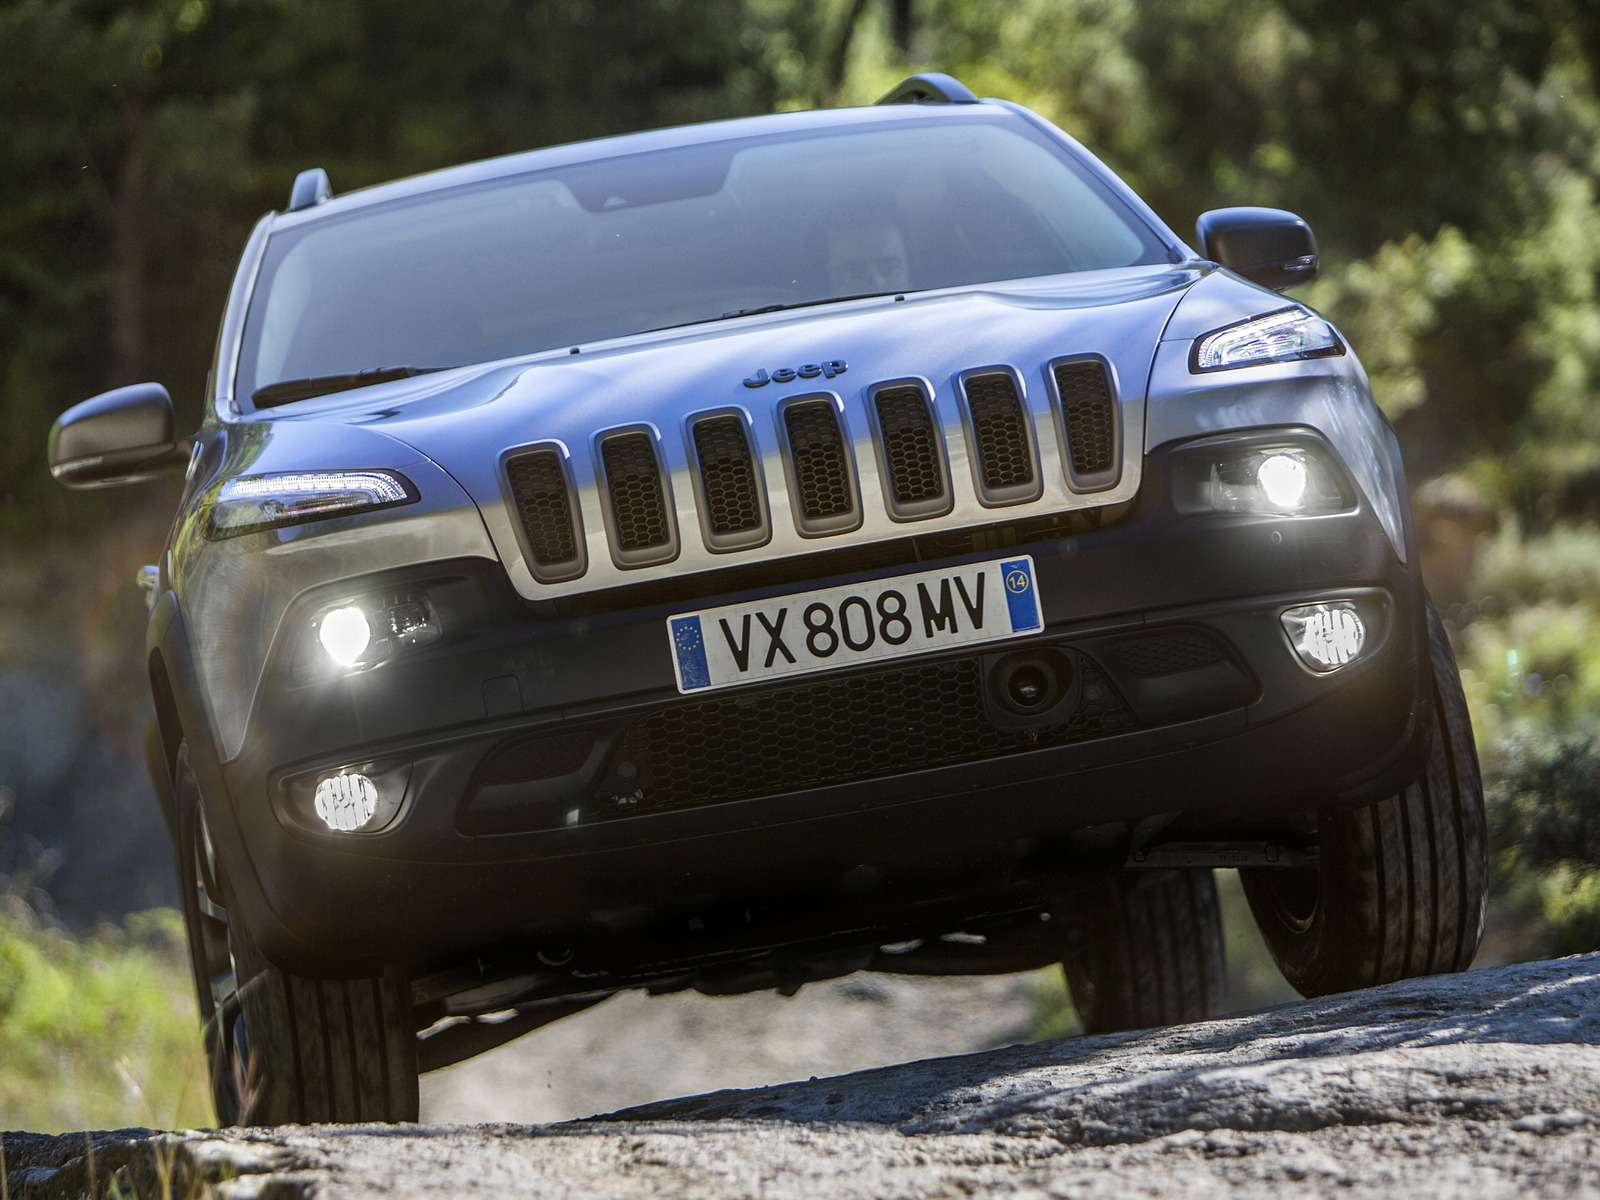 Theall-new 2014 Jeep Cherokee Trailhawk model with the standard